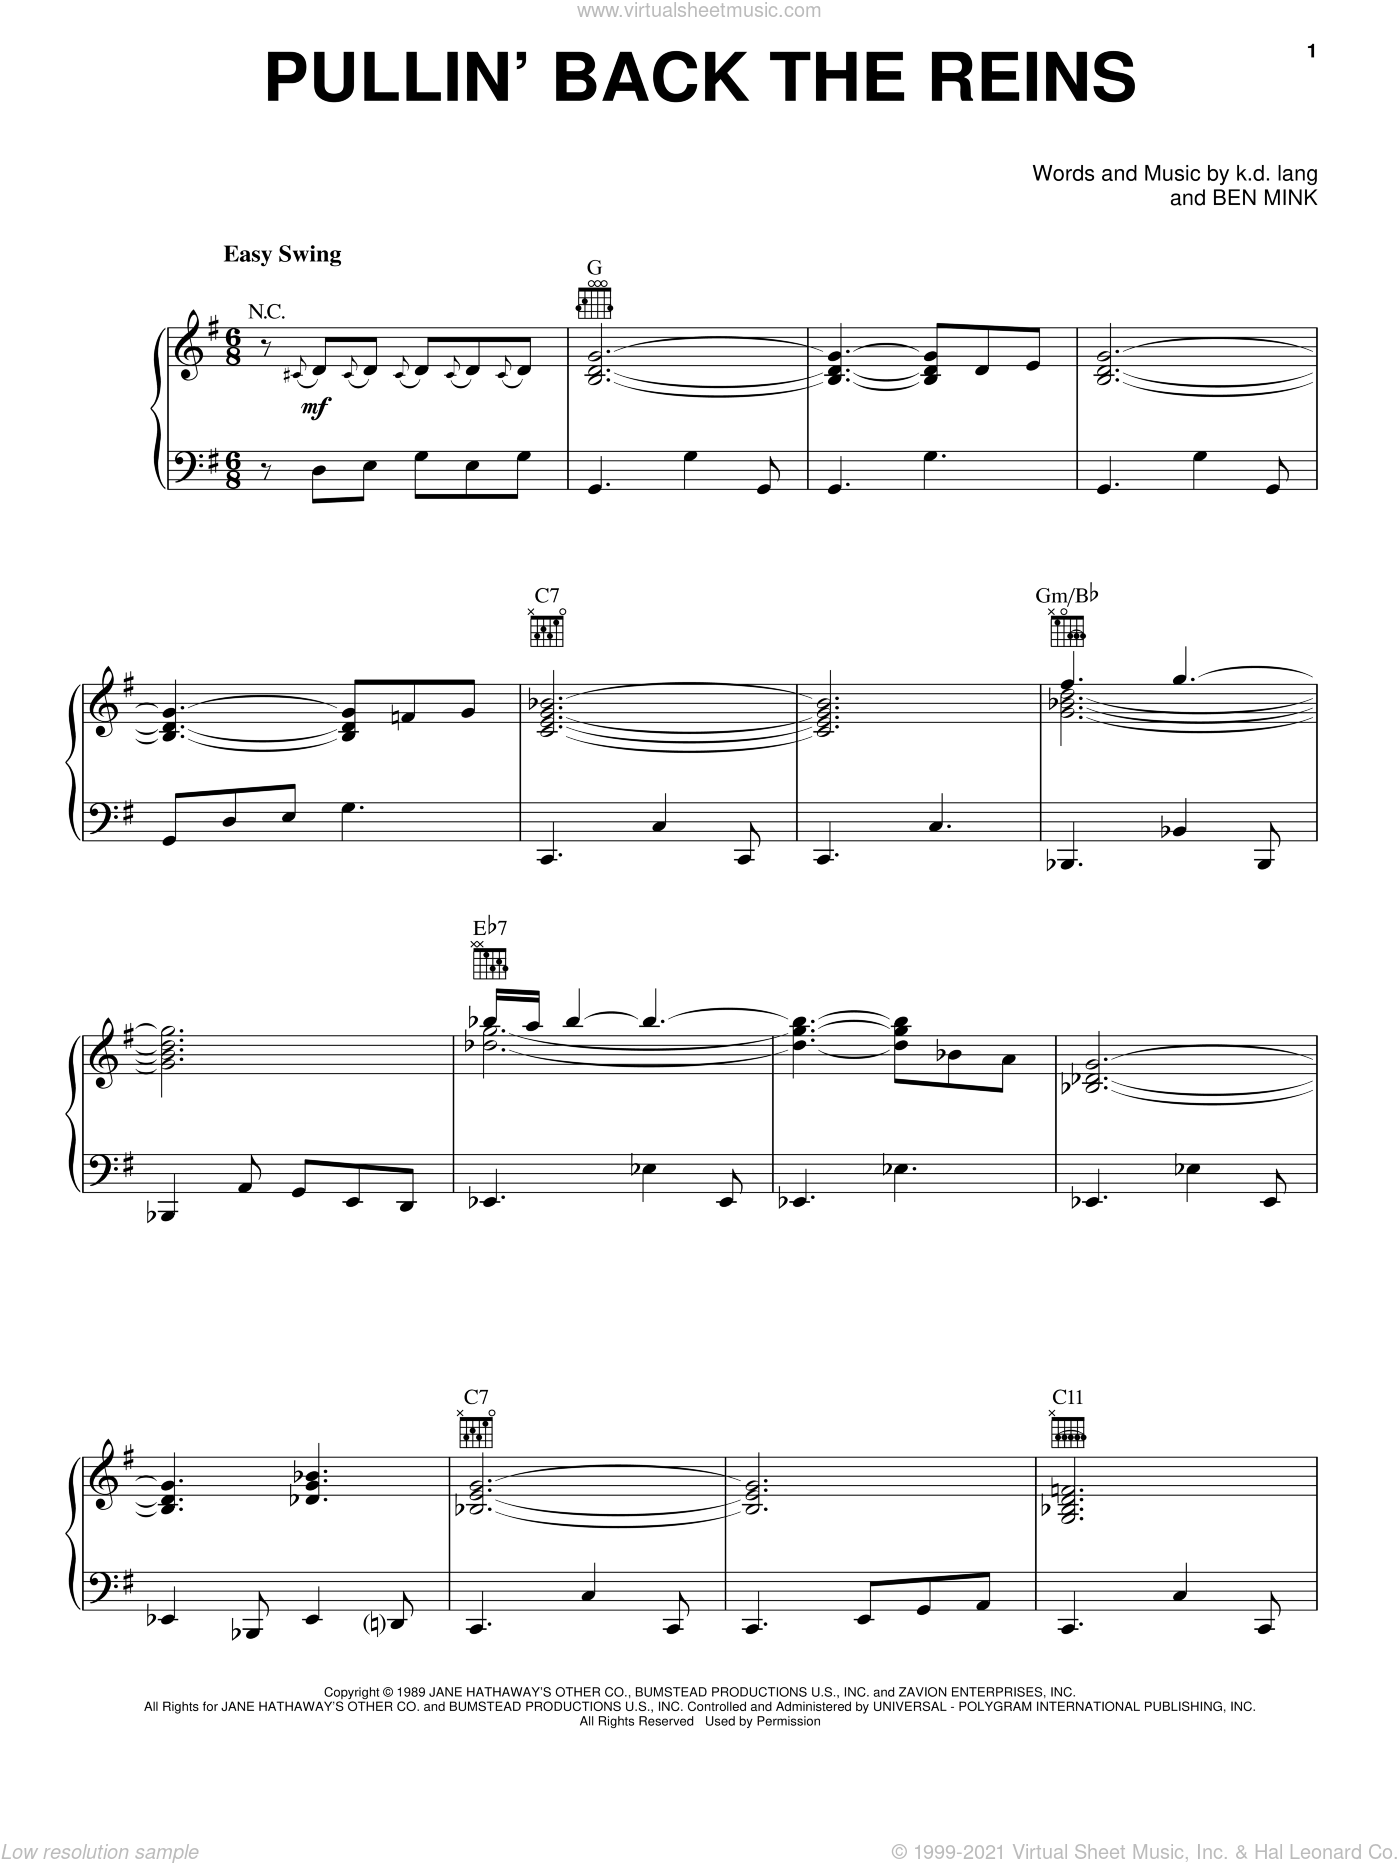 Pullin' Back The Reins sheet music for voice, piano or guitar by K.D. Lang and Ben Mink, intermediate skill level